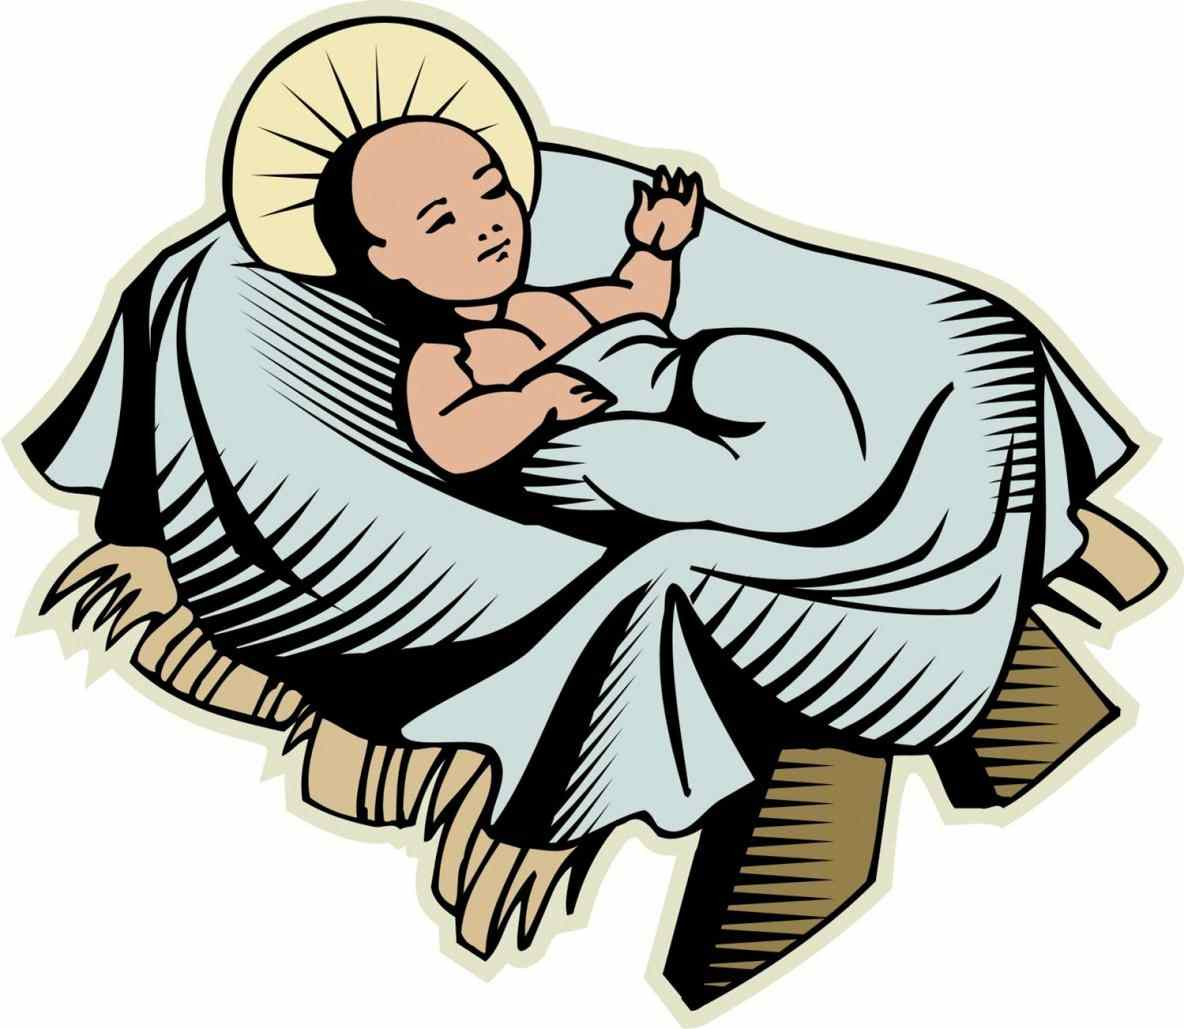 hight resolution of 1184x1029 baby bed s cartoon jesus crib clipart cute baby christ stock